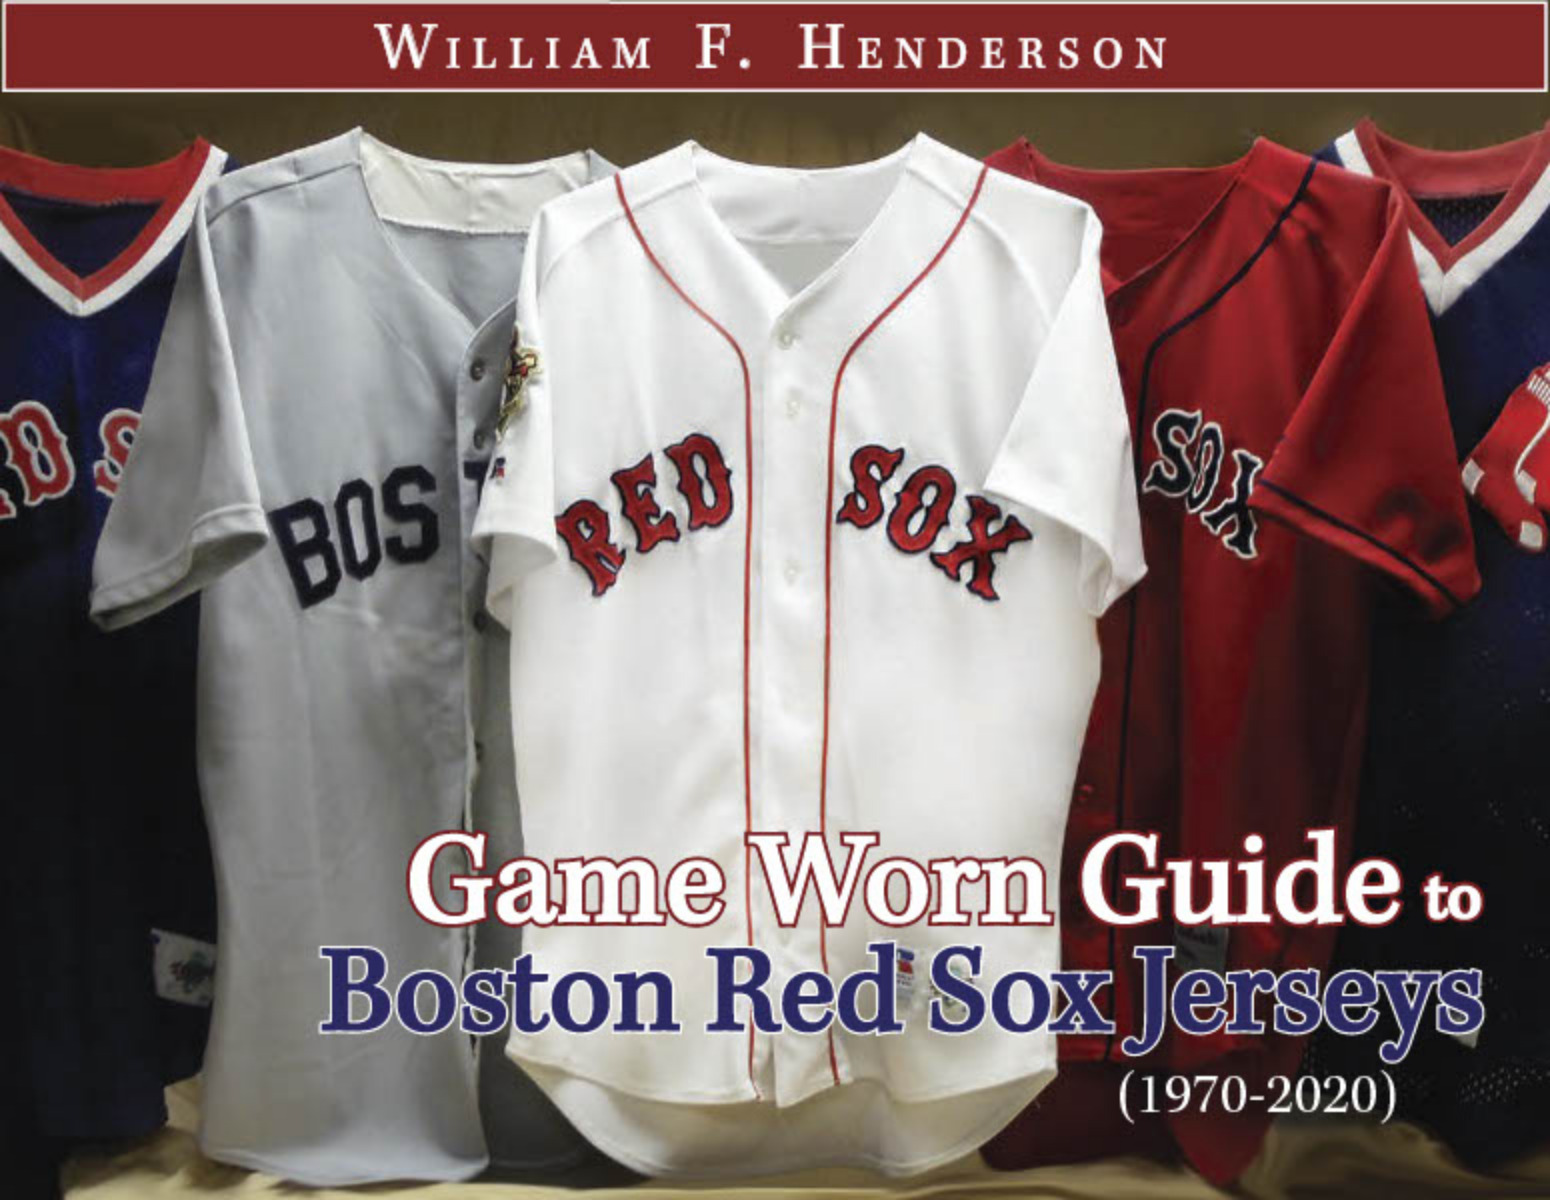 Game Worn Guide to Boston Red Sox Jerseys (1970-2020)